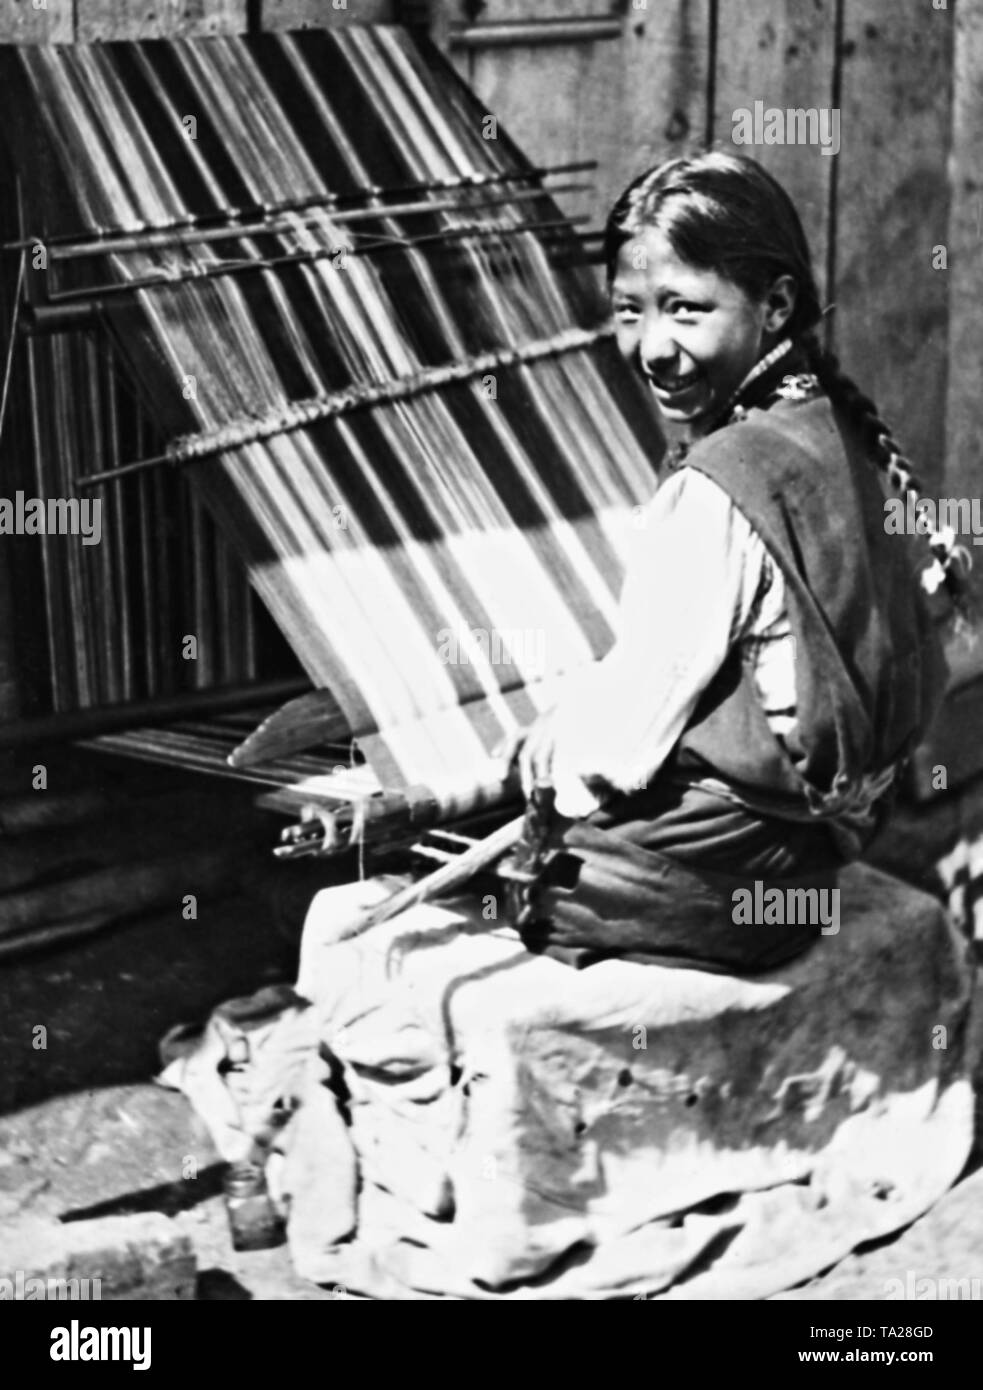 A young girl weaving carpet. - Stock Image